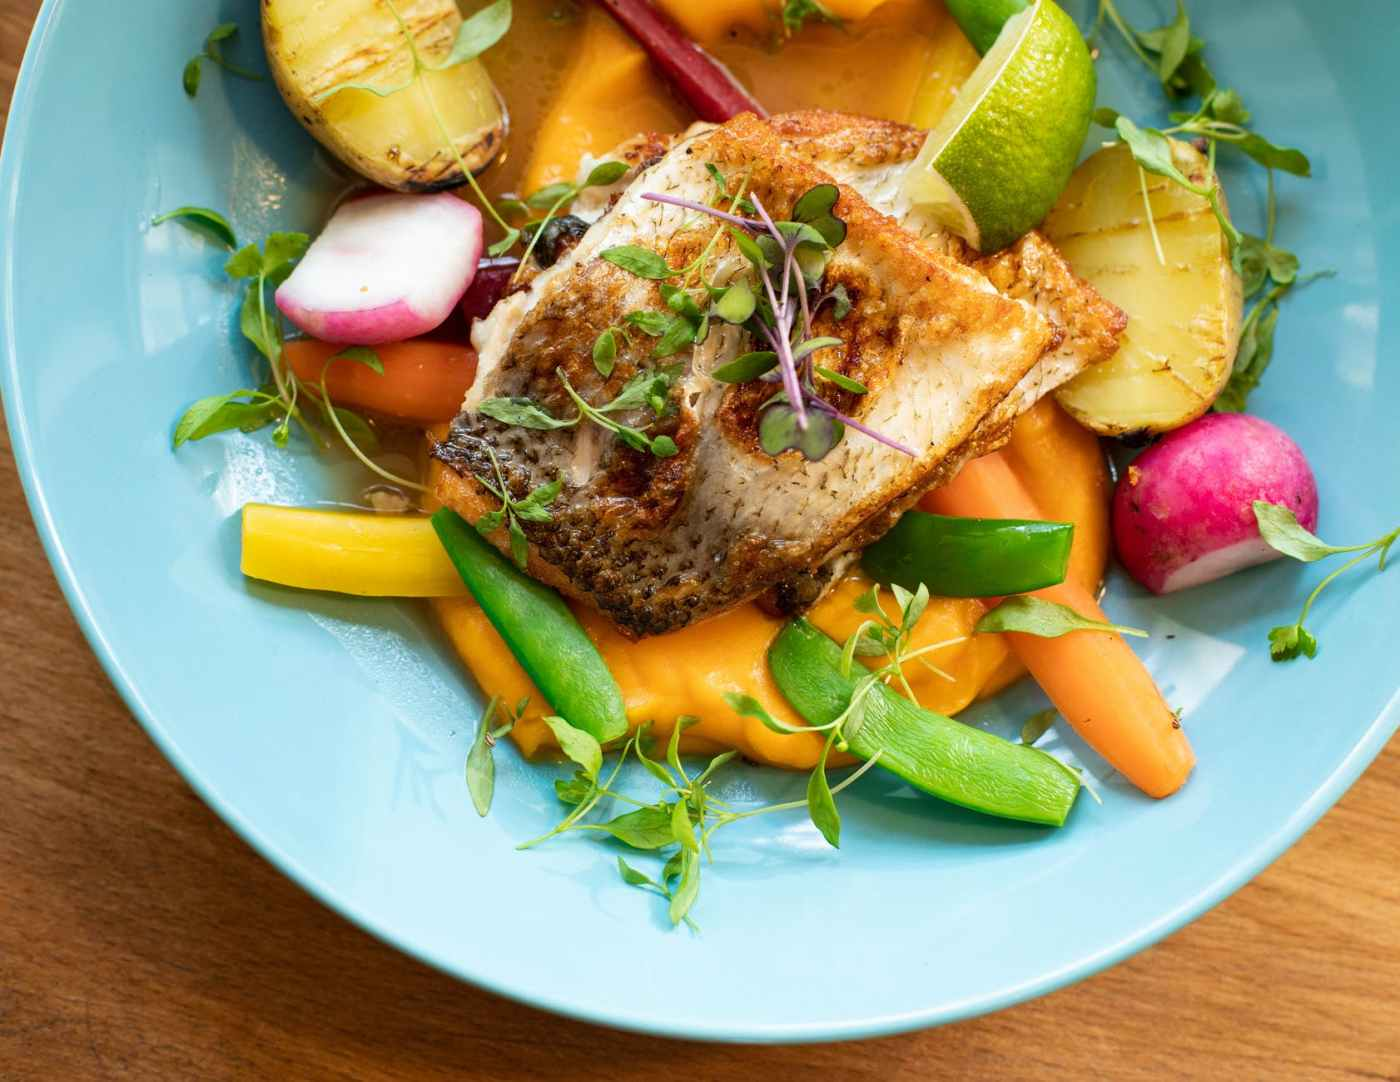 fried fish with vegetables dish on teal plate